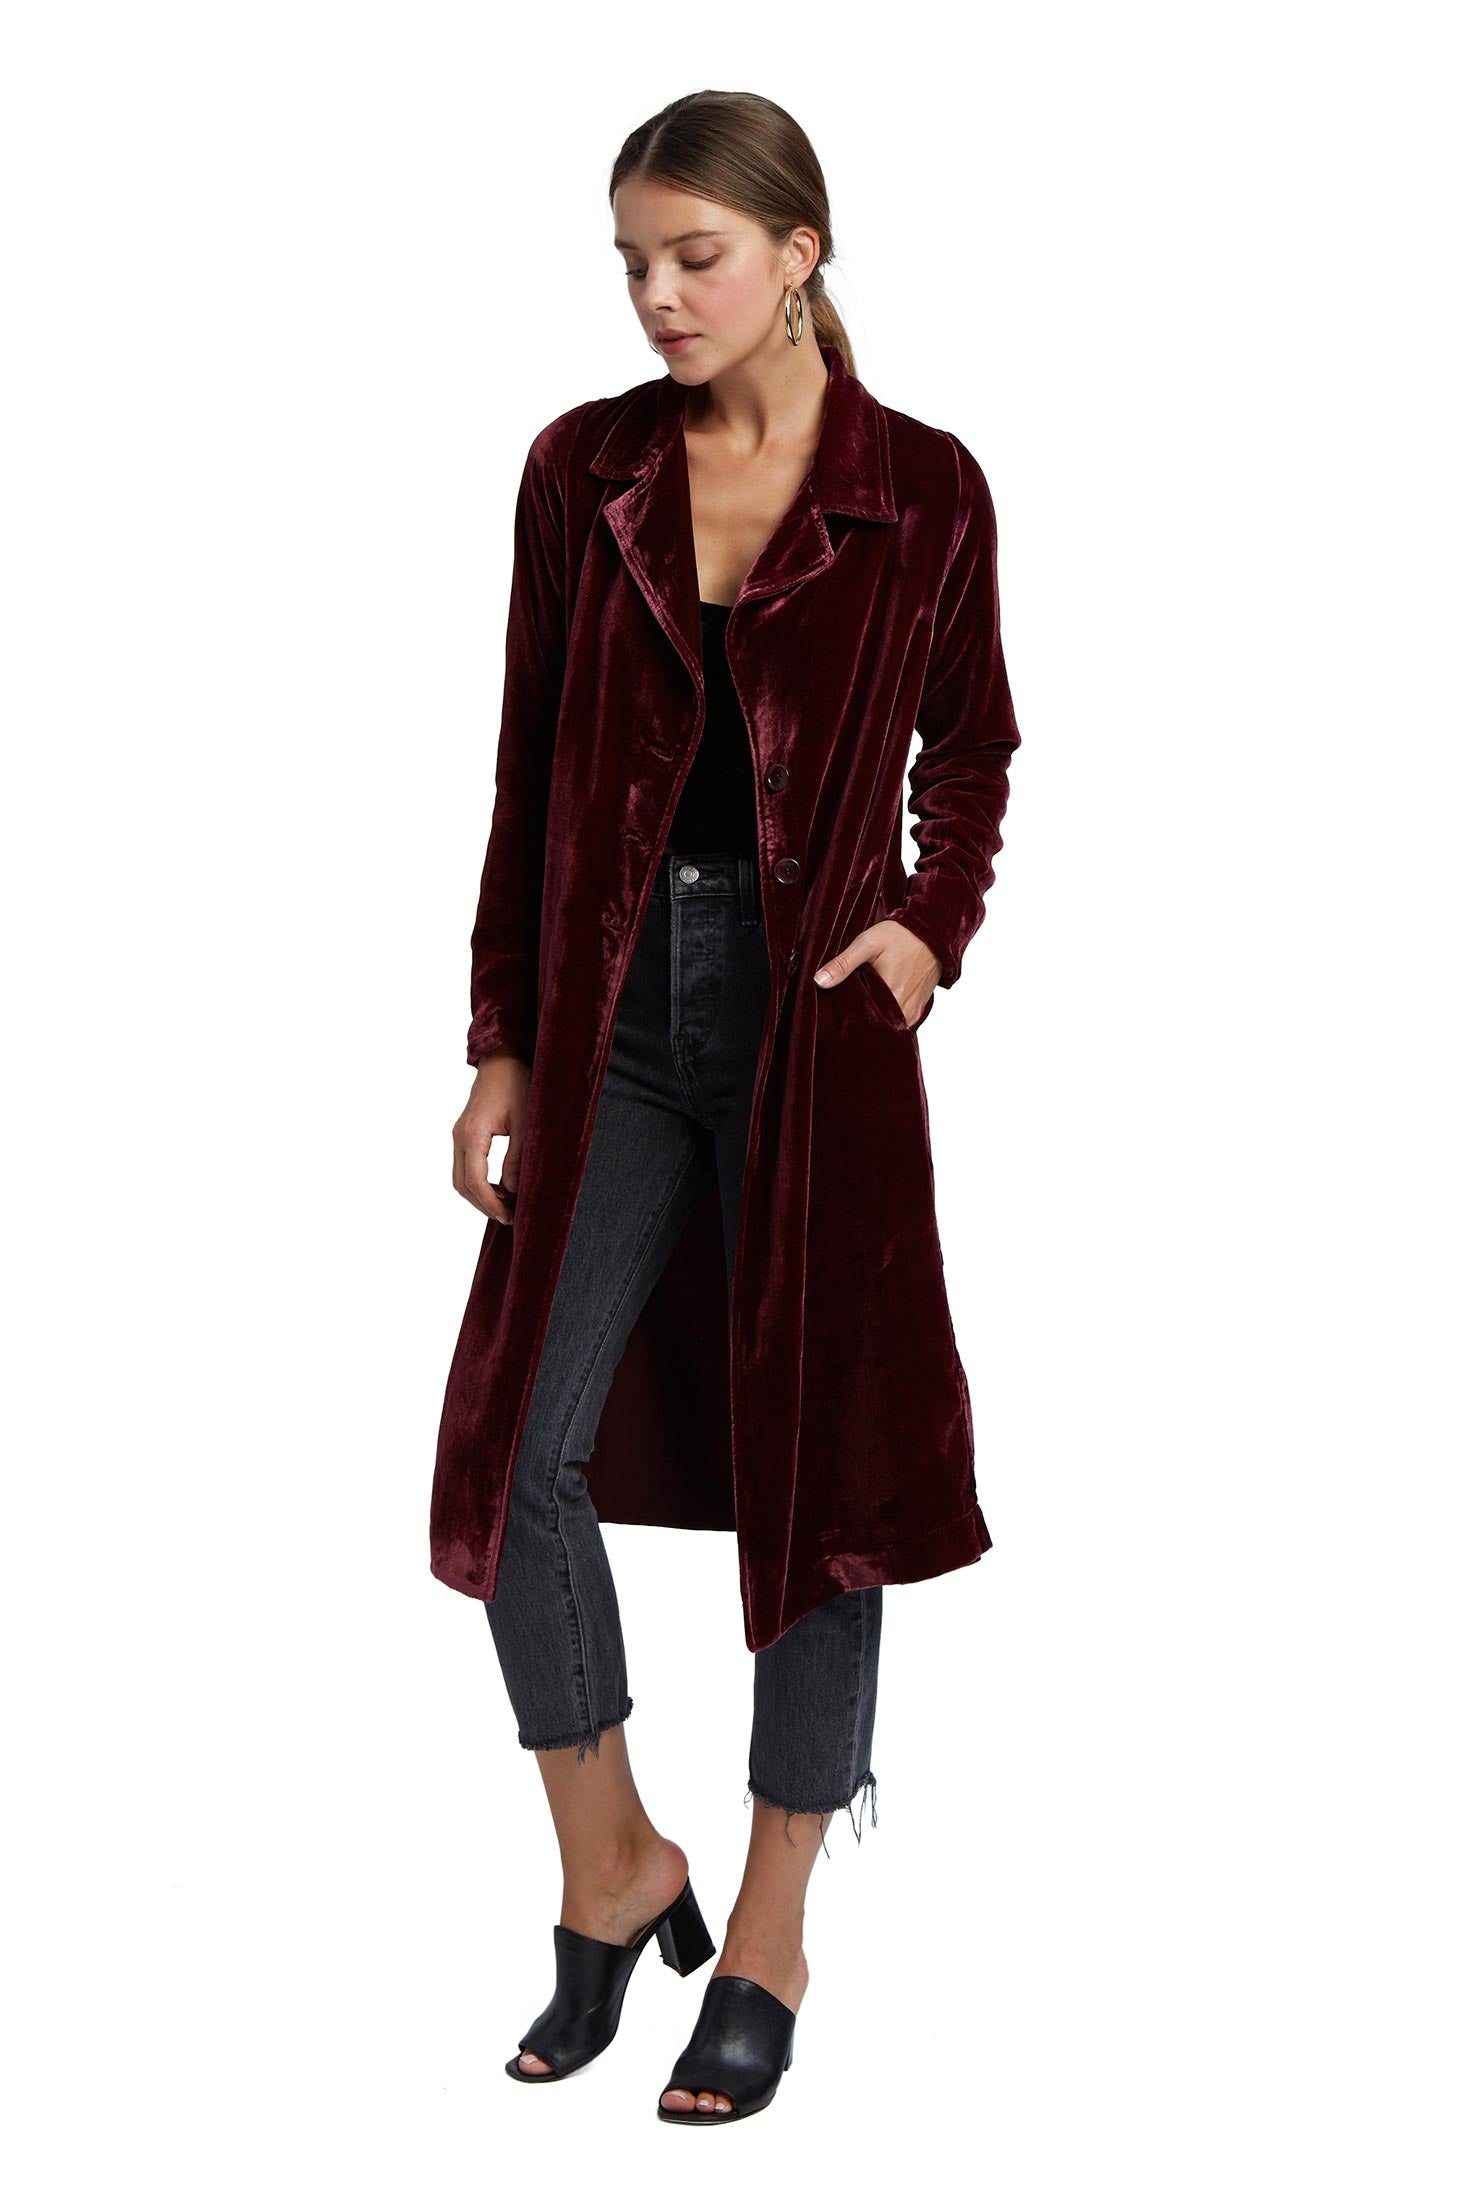 Velvet Coat - Bordeaux Velvet